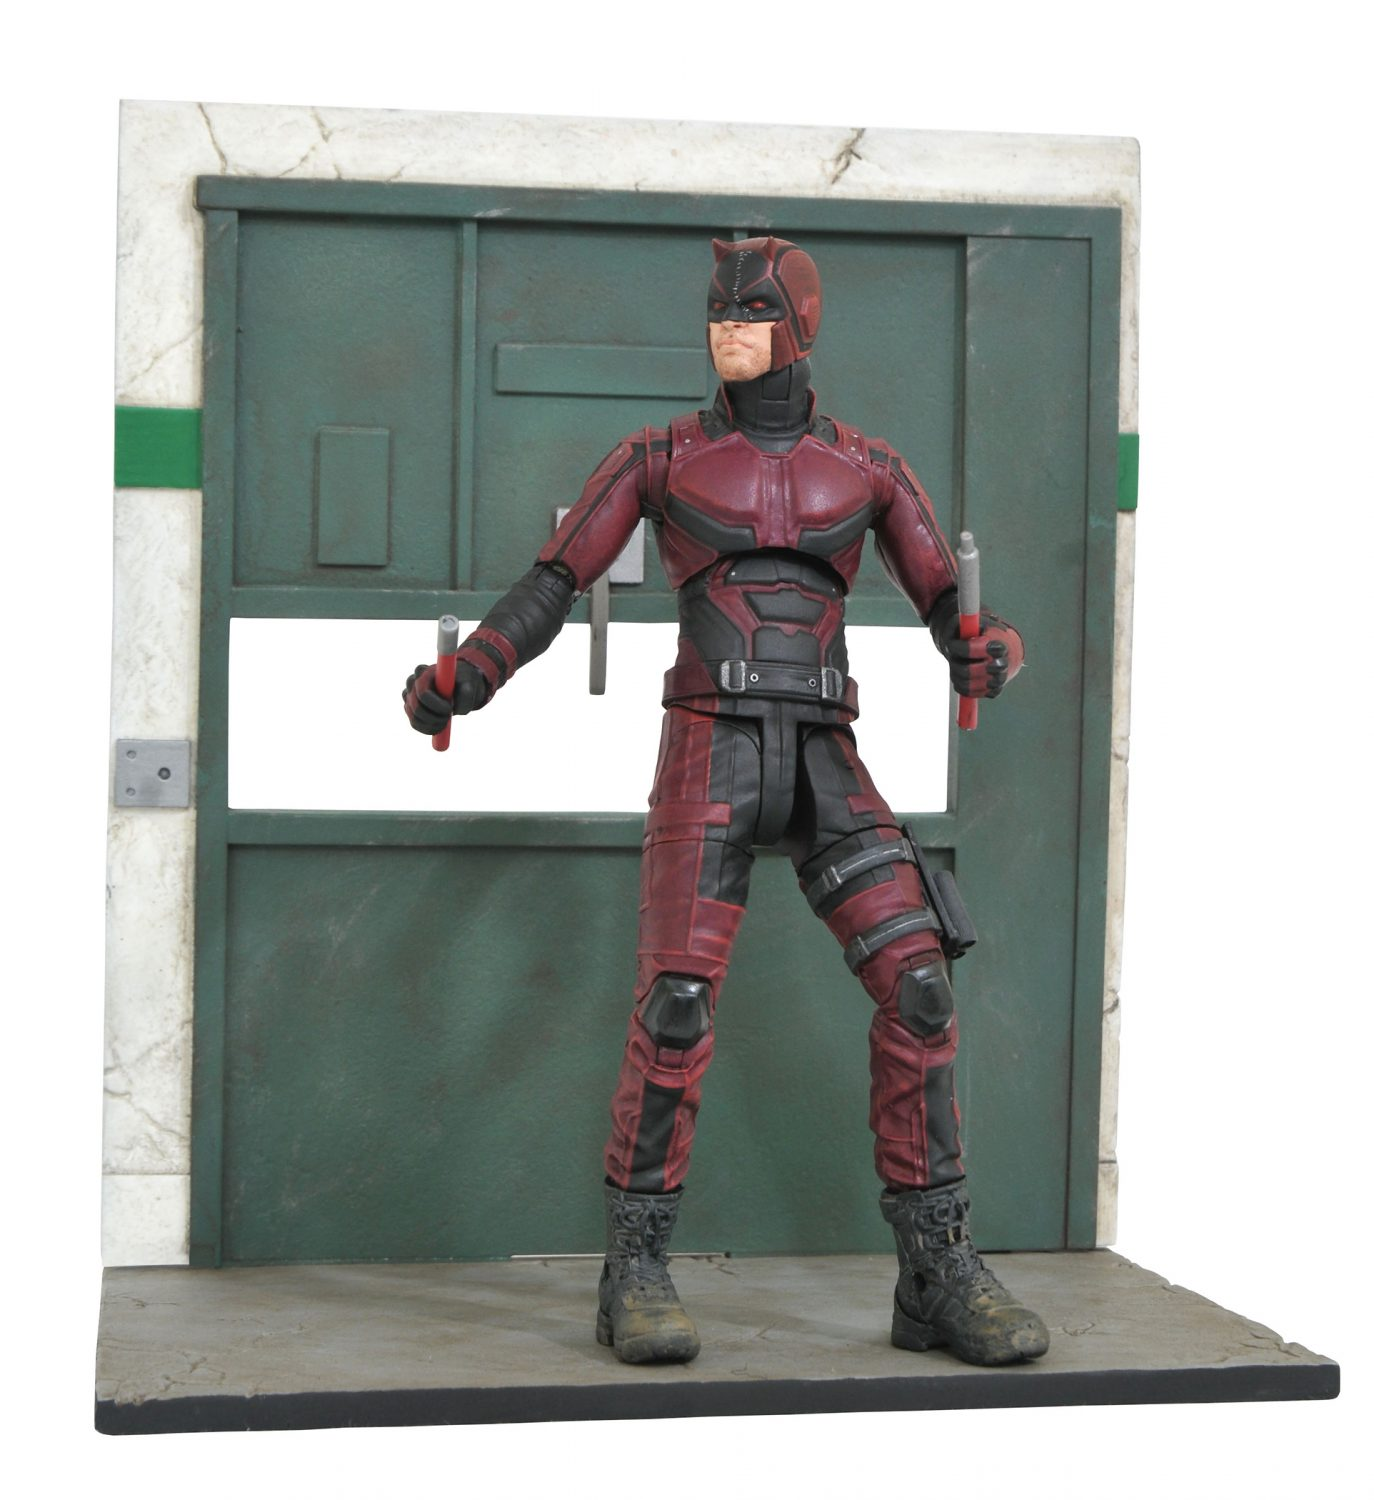 Diamond Select Toys Marvel Select Netflix Daredevil Figure In Stores This Week